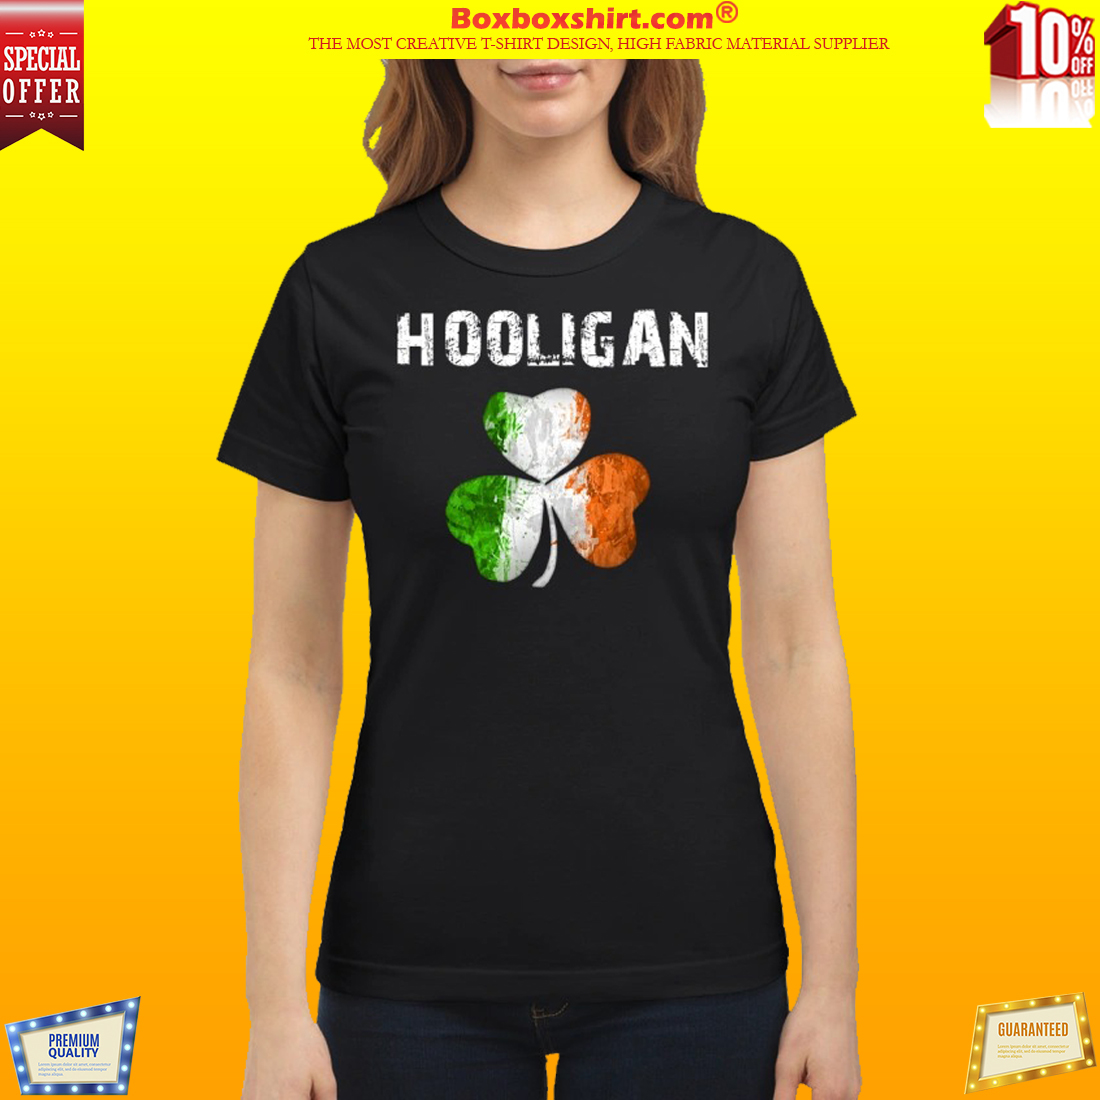 Irish flag shamrock hooligan classic shirt